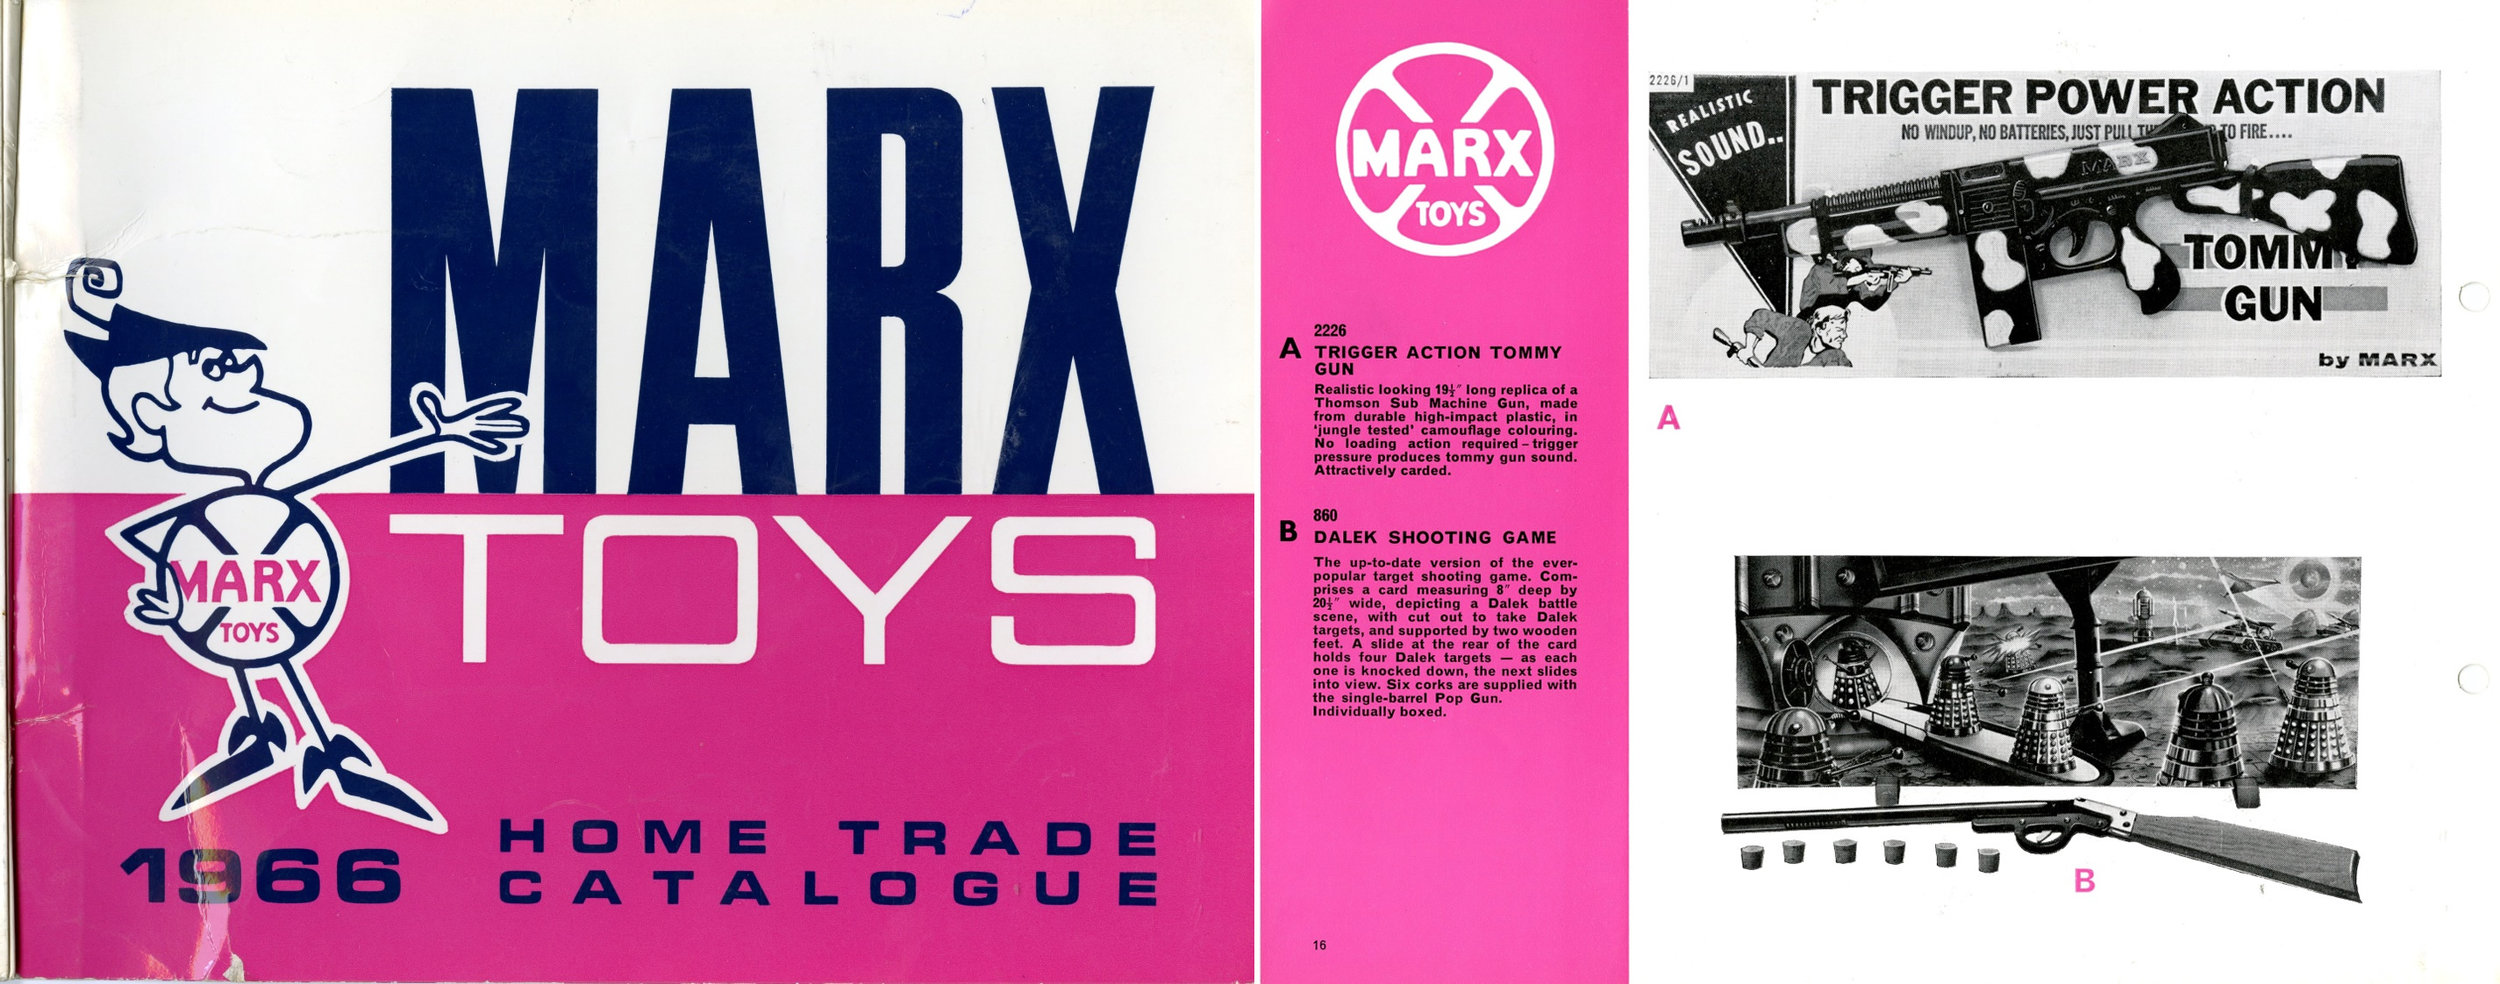 Louis Marx and Company Ltd., Marx Toys 1966 Home Trade Catalogue showing the Dalek Shooting Game.